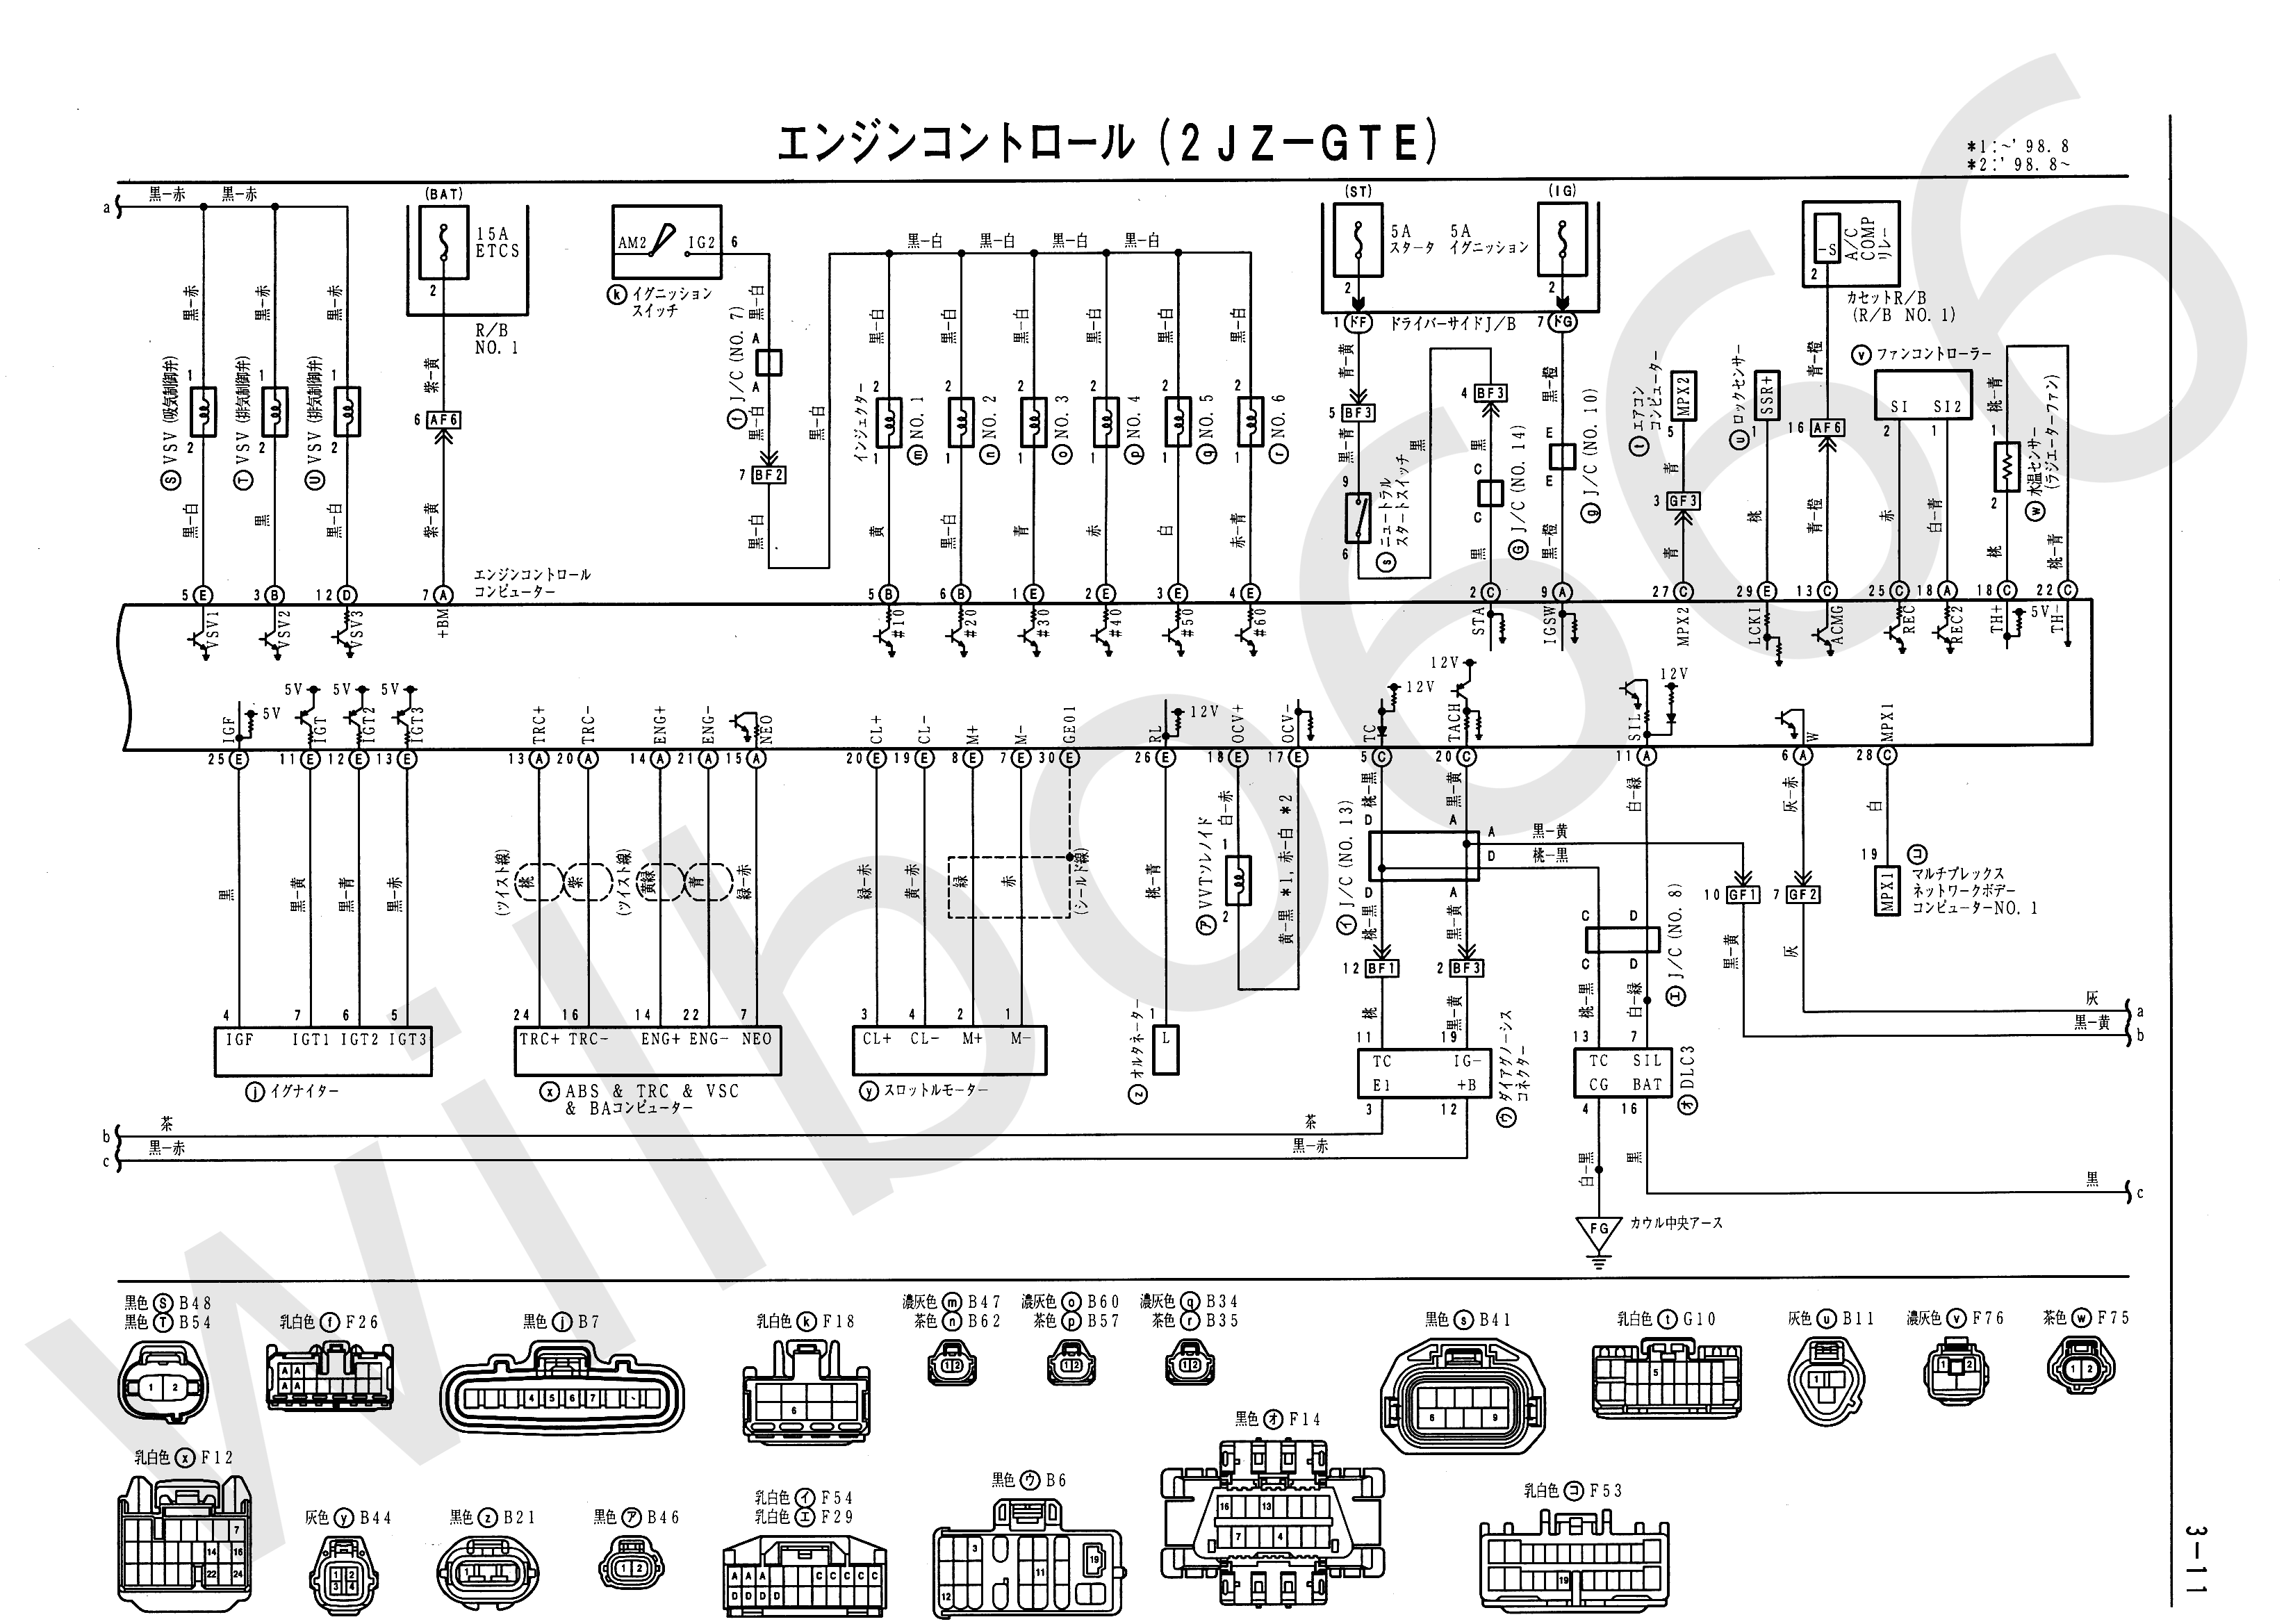 JZS161 Electrical Wiring Diagram 6748505 3 11 engine sensor diagram 1jz wiring diagrams instruction 1jz wiring diagram at soozxer.org